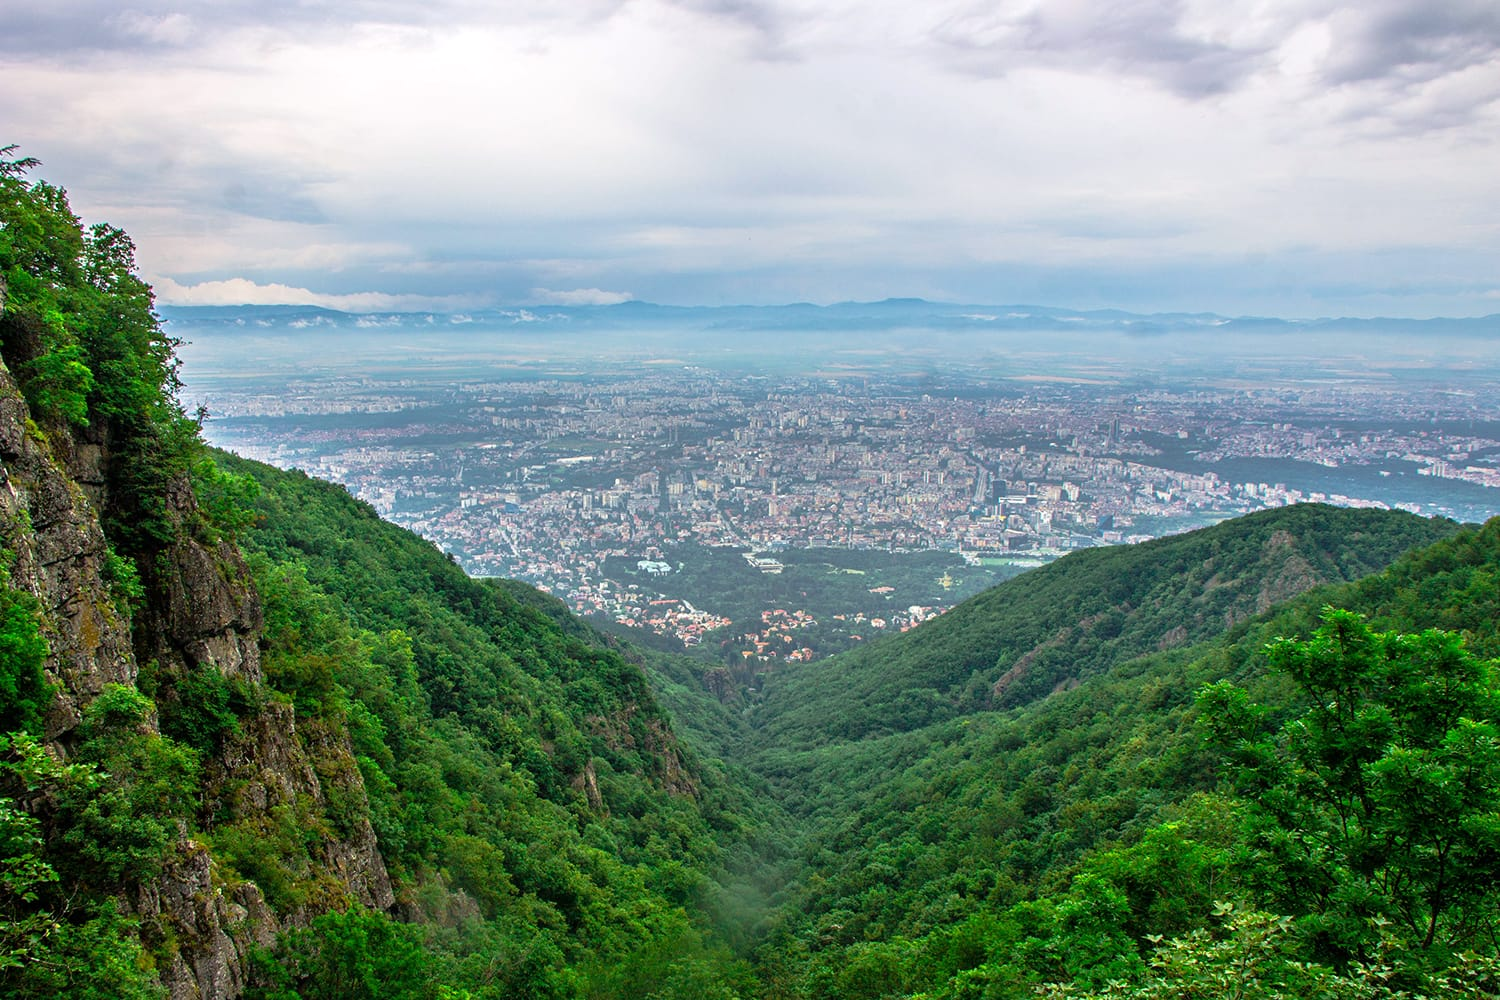 Panoramic view of Sofia, Bulgaria from a mountain